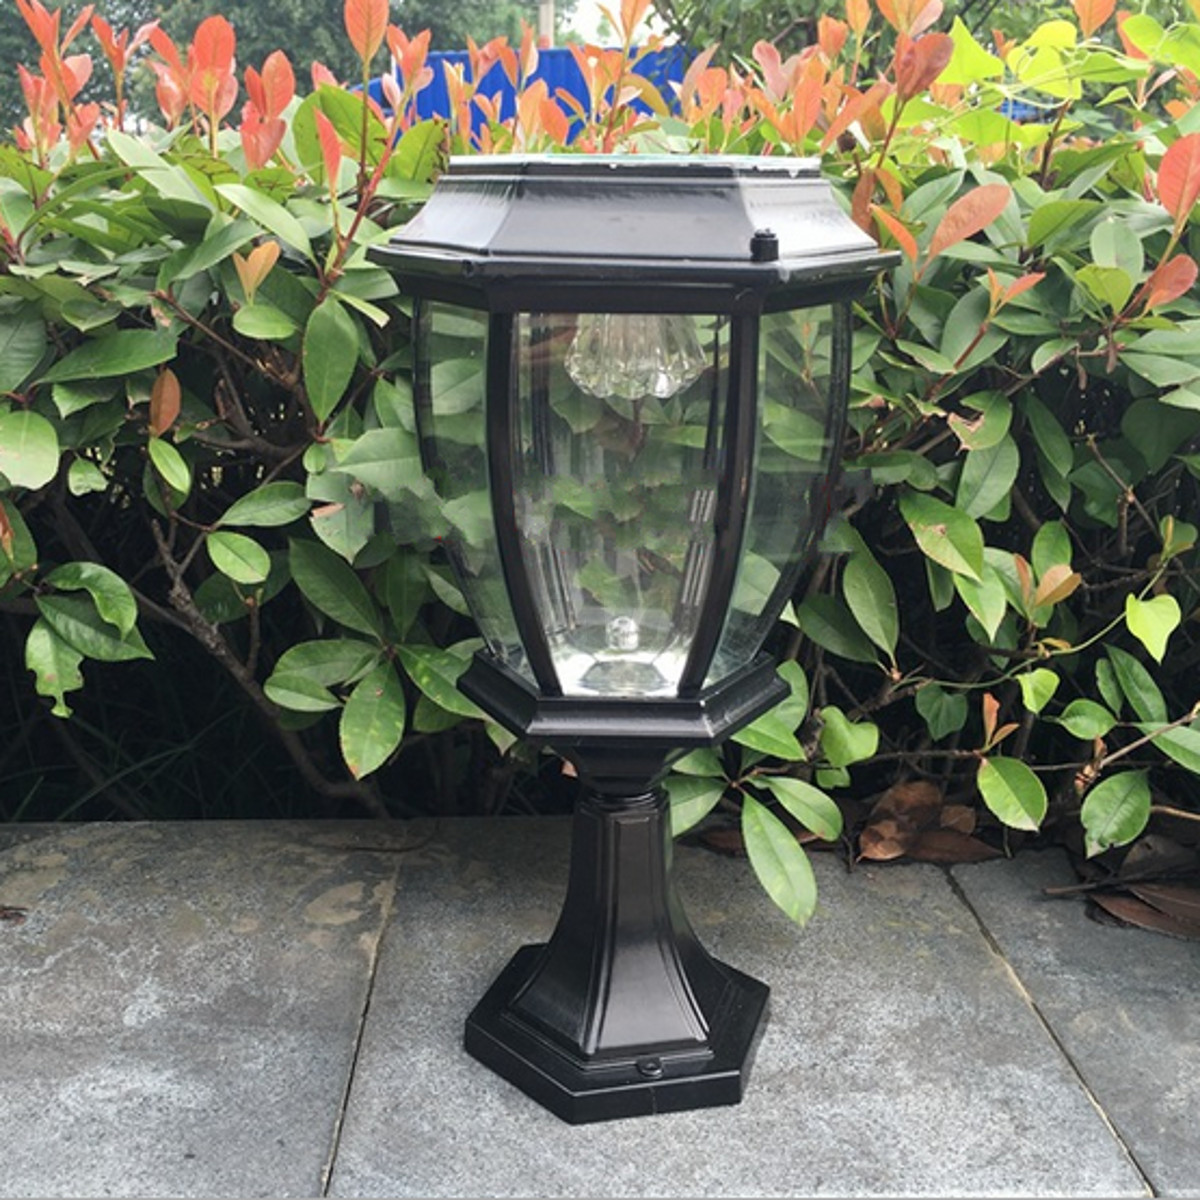 Outdoor exterior solar powered led pillar light post lamp garden yard lantern us ebay for Solar exterior post lantern light